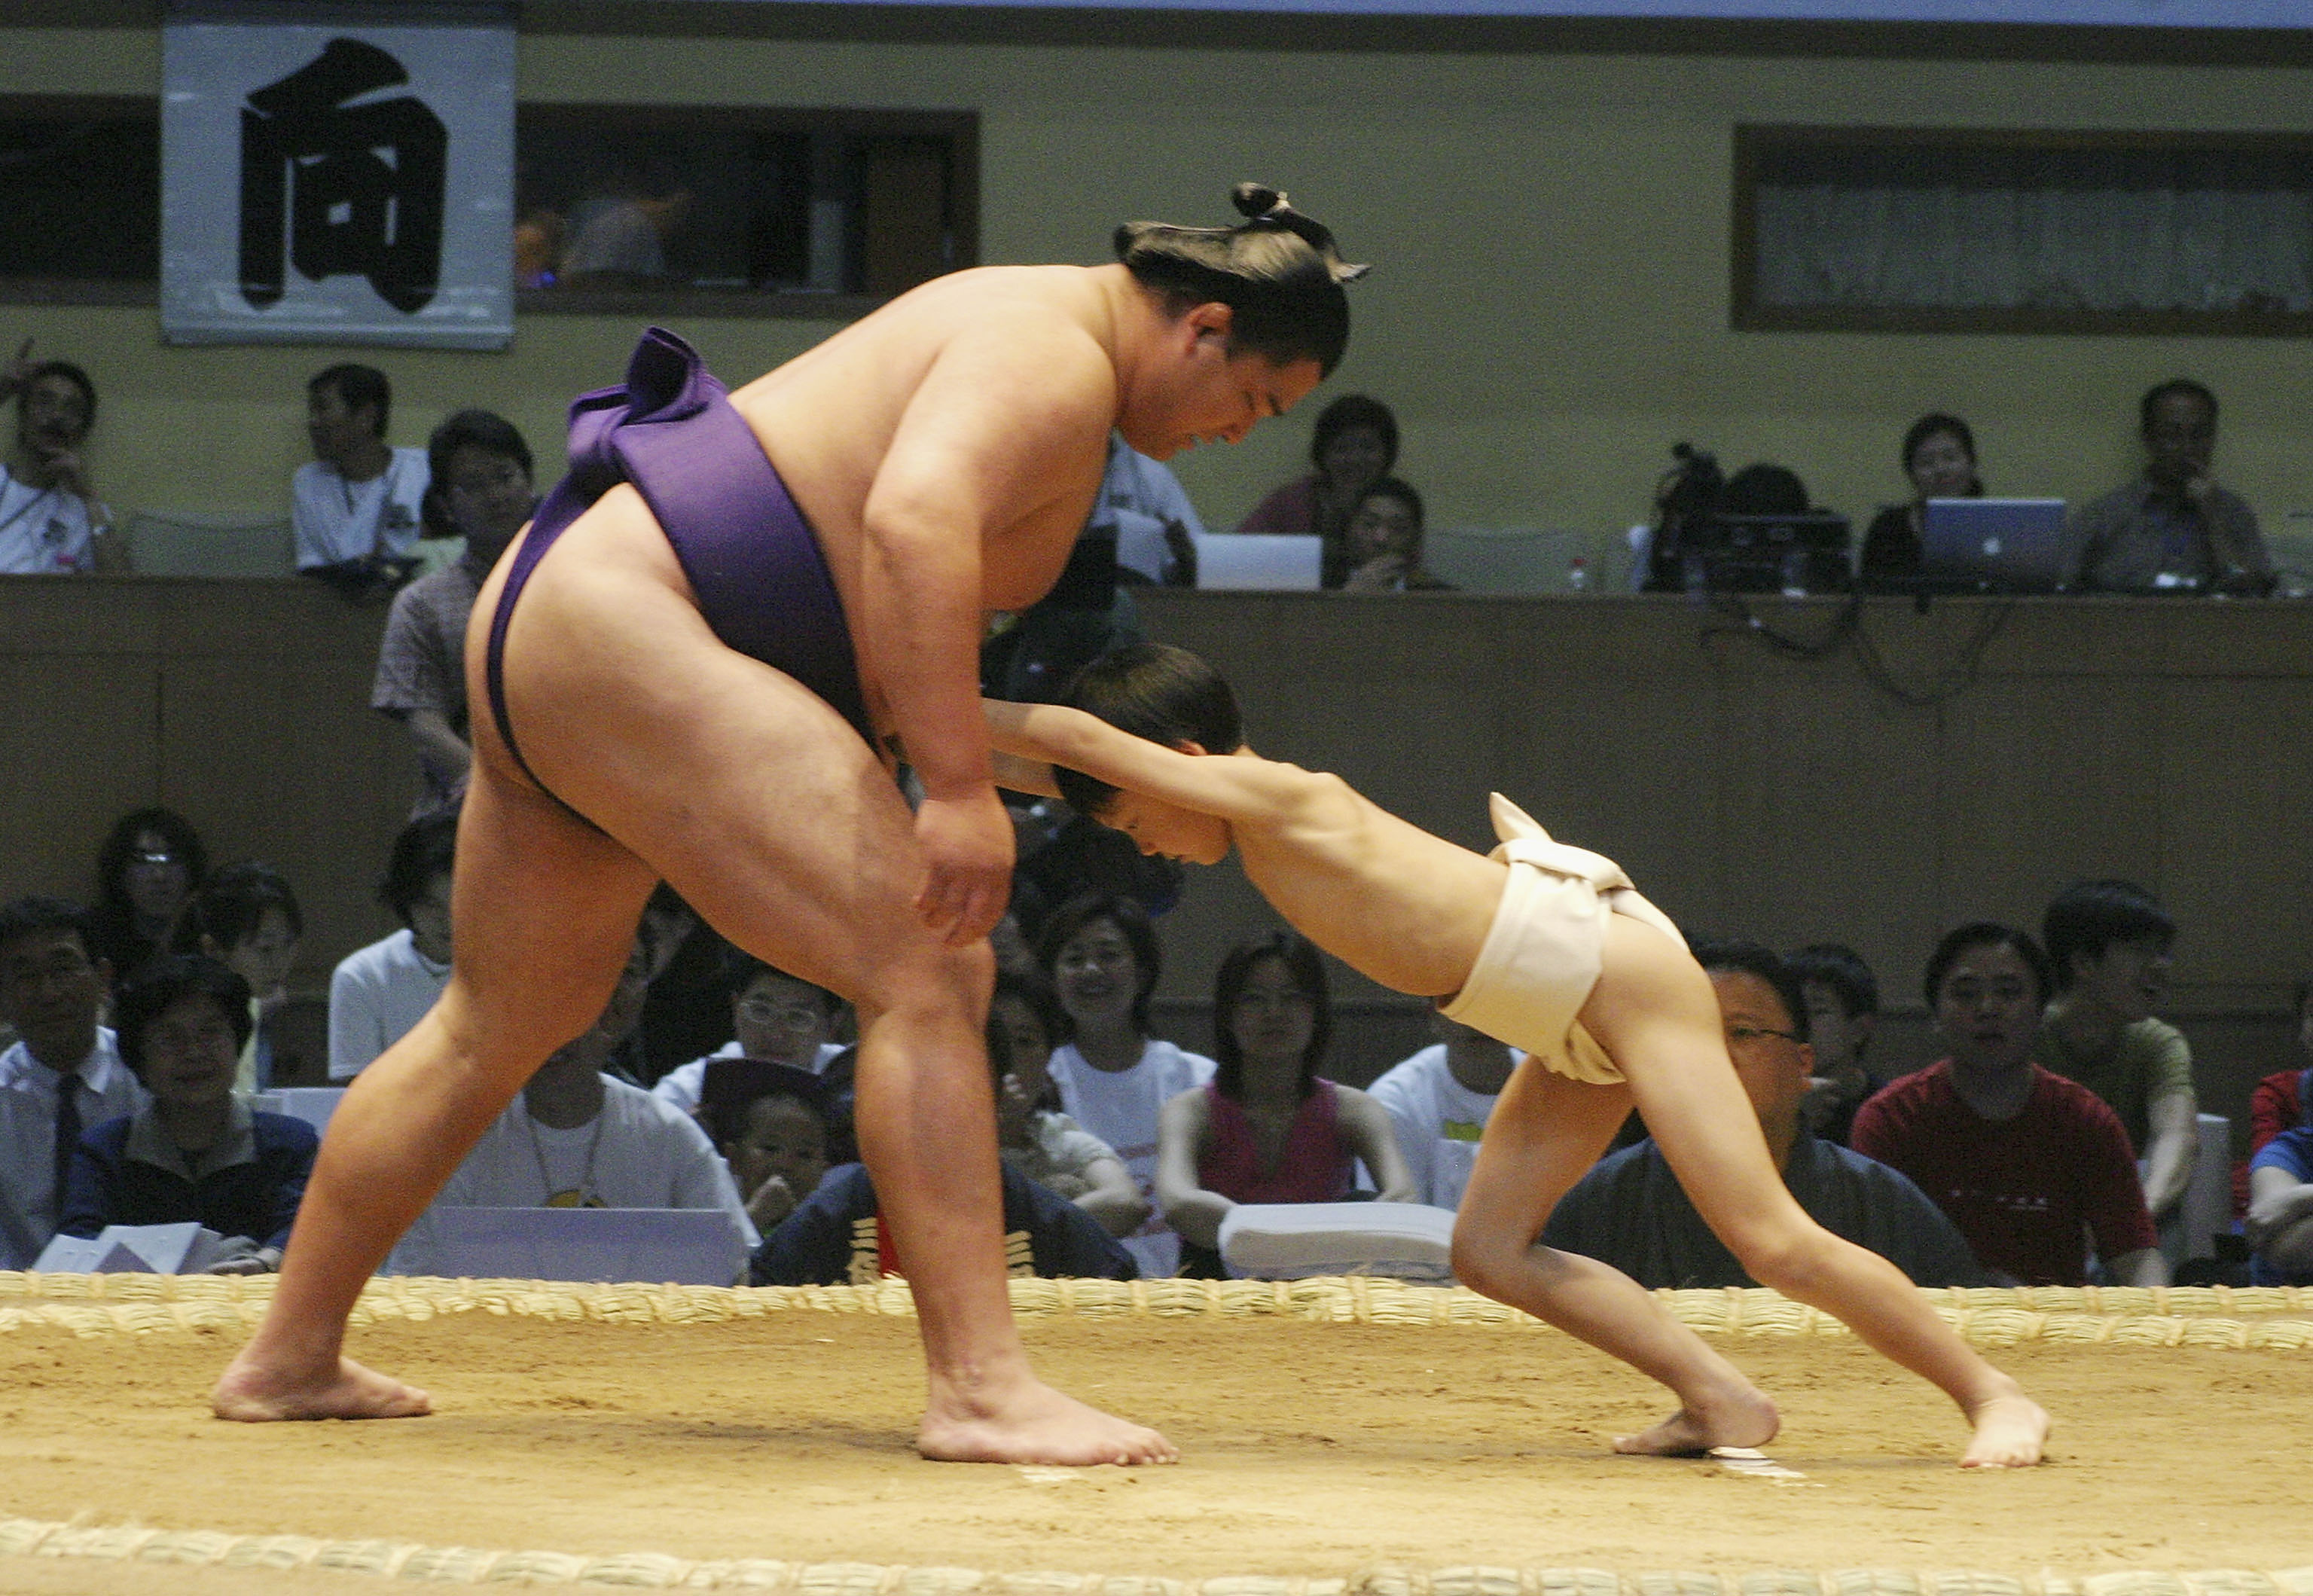 Sumo Westlers Compete In Bejing For First Time In 30 Years